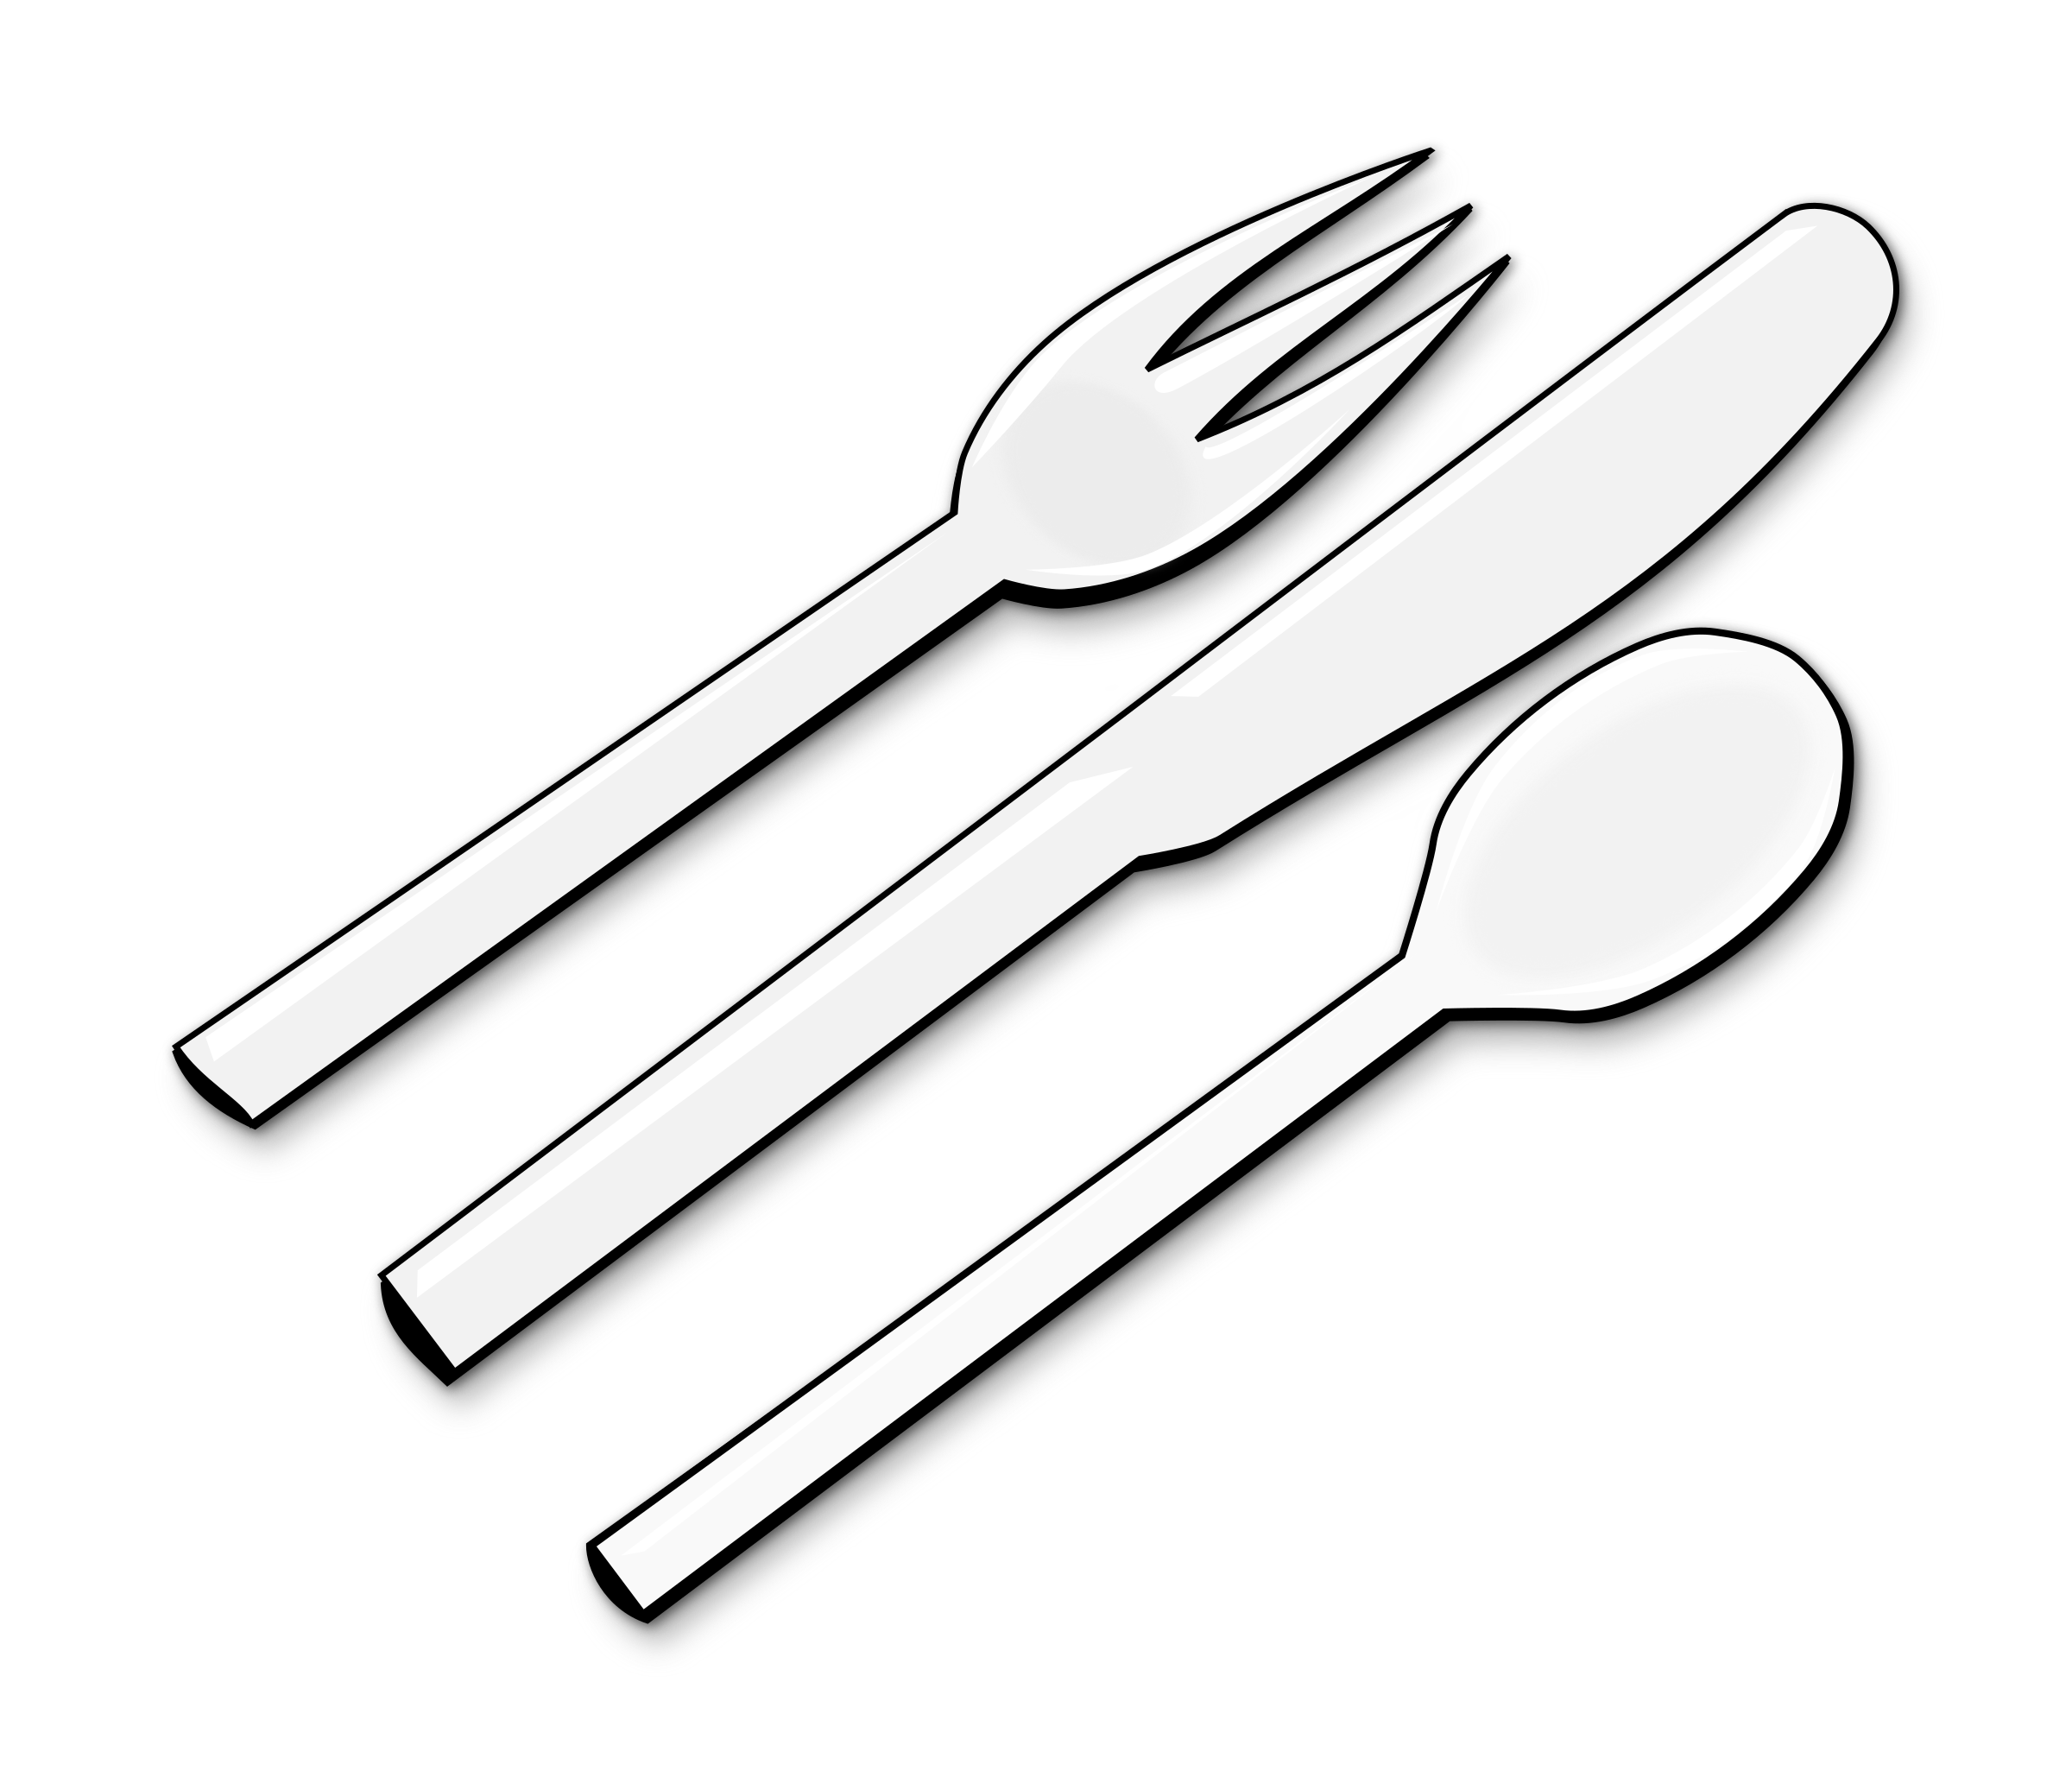 Cutlery by algotruneman